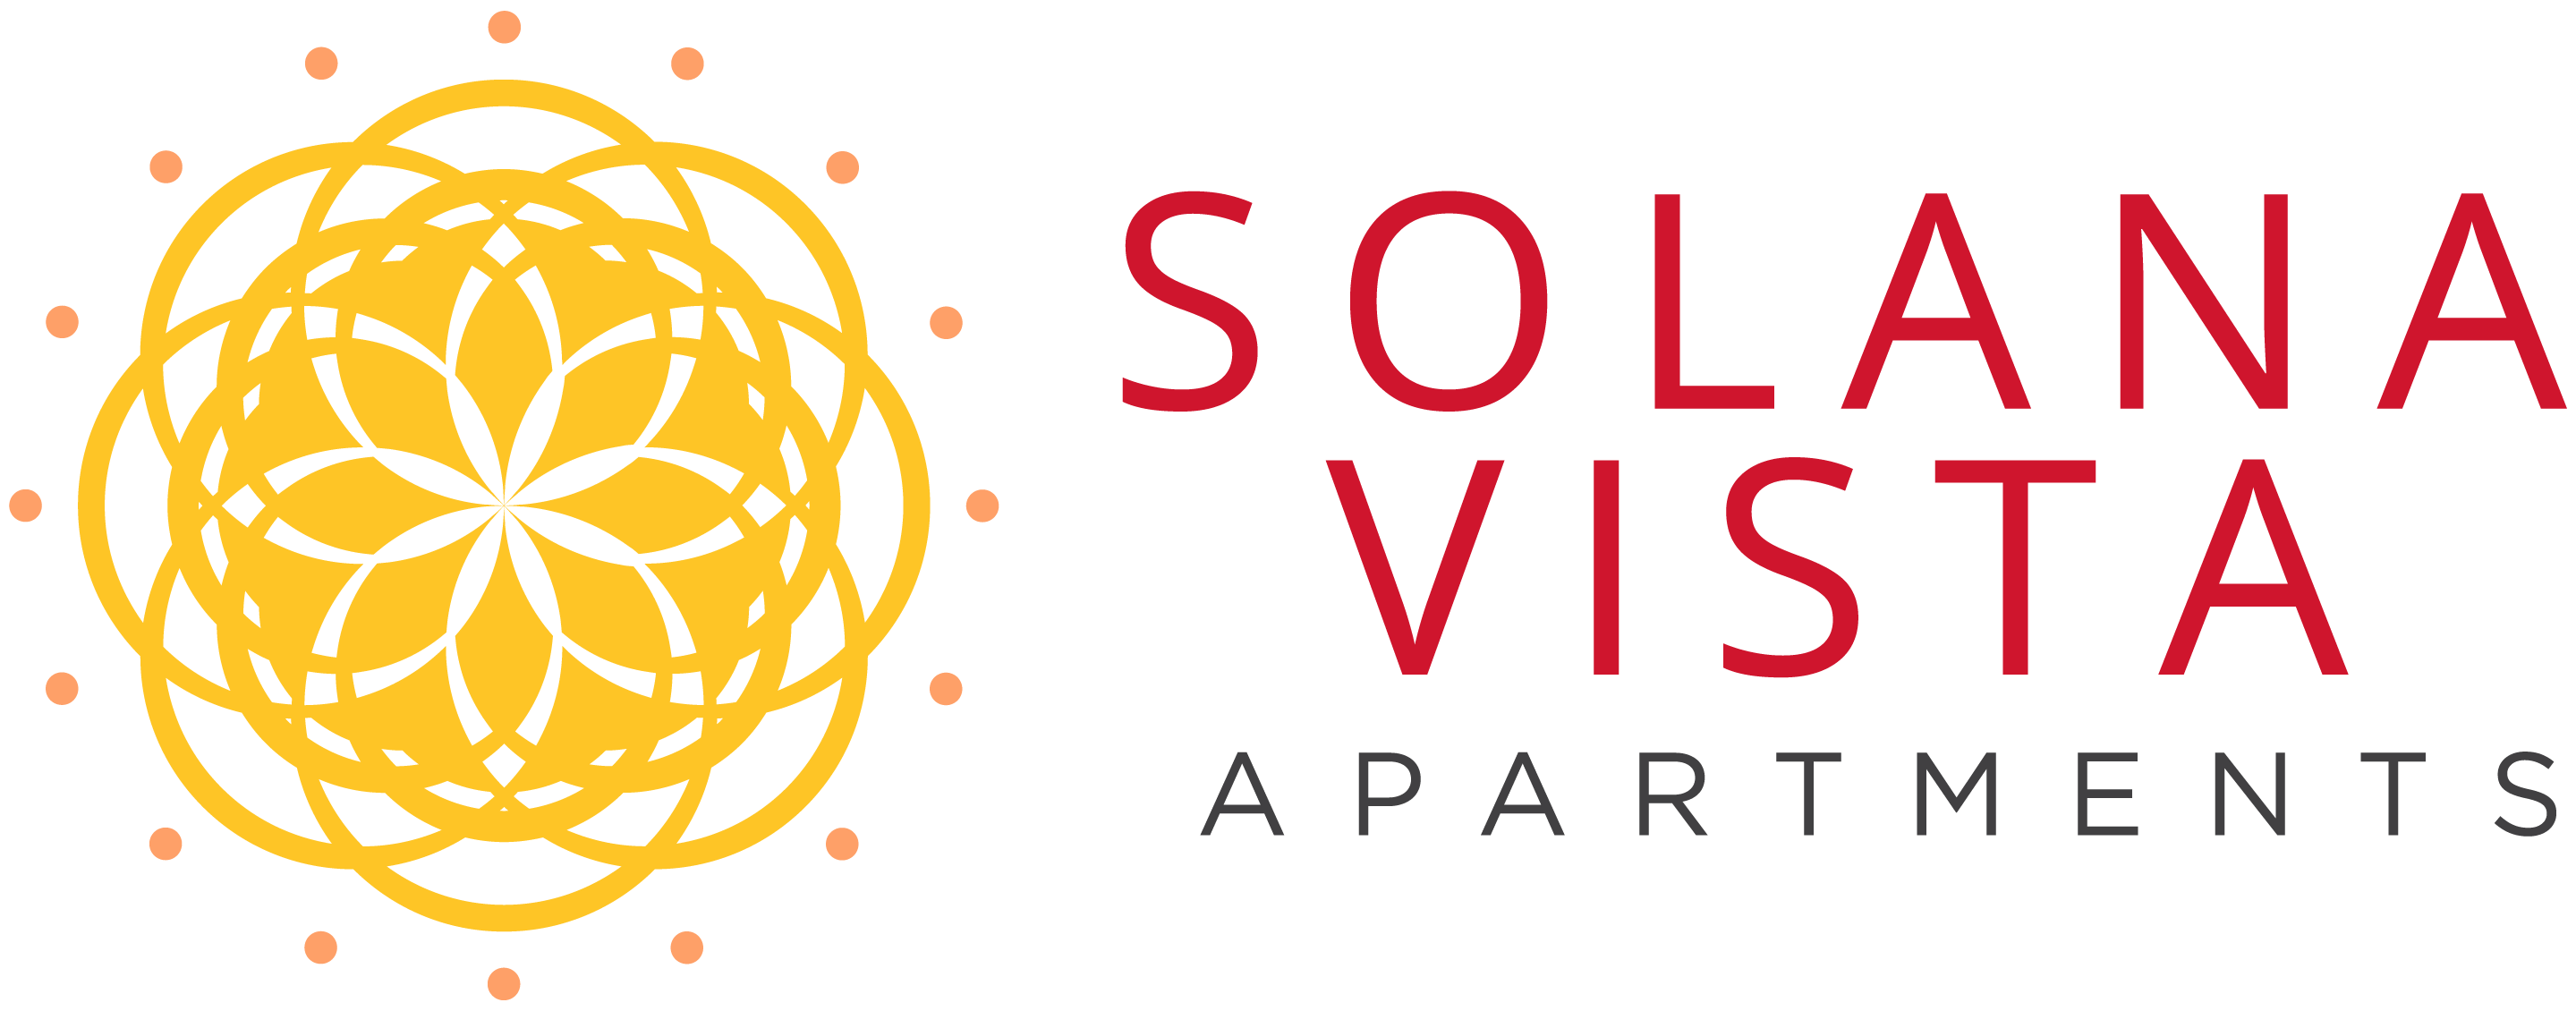 Solana Vista Apartments Logo